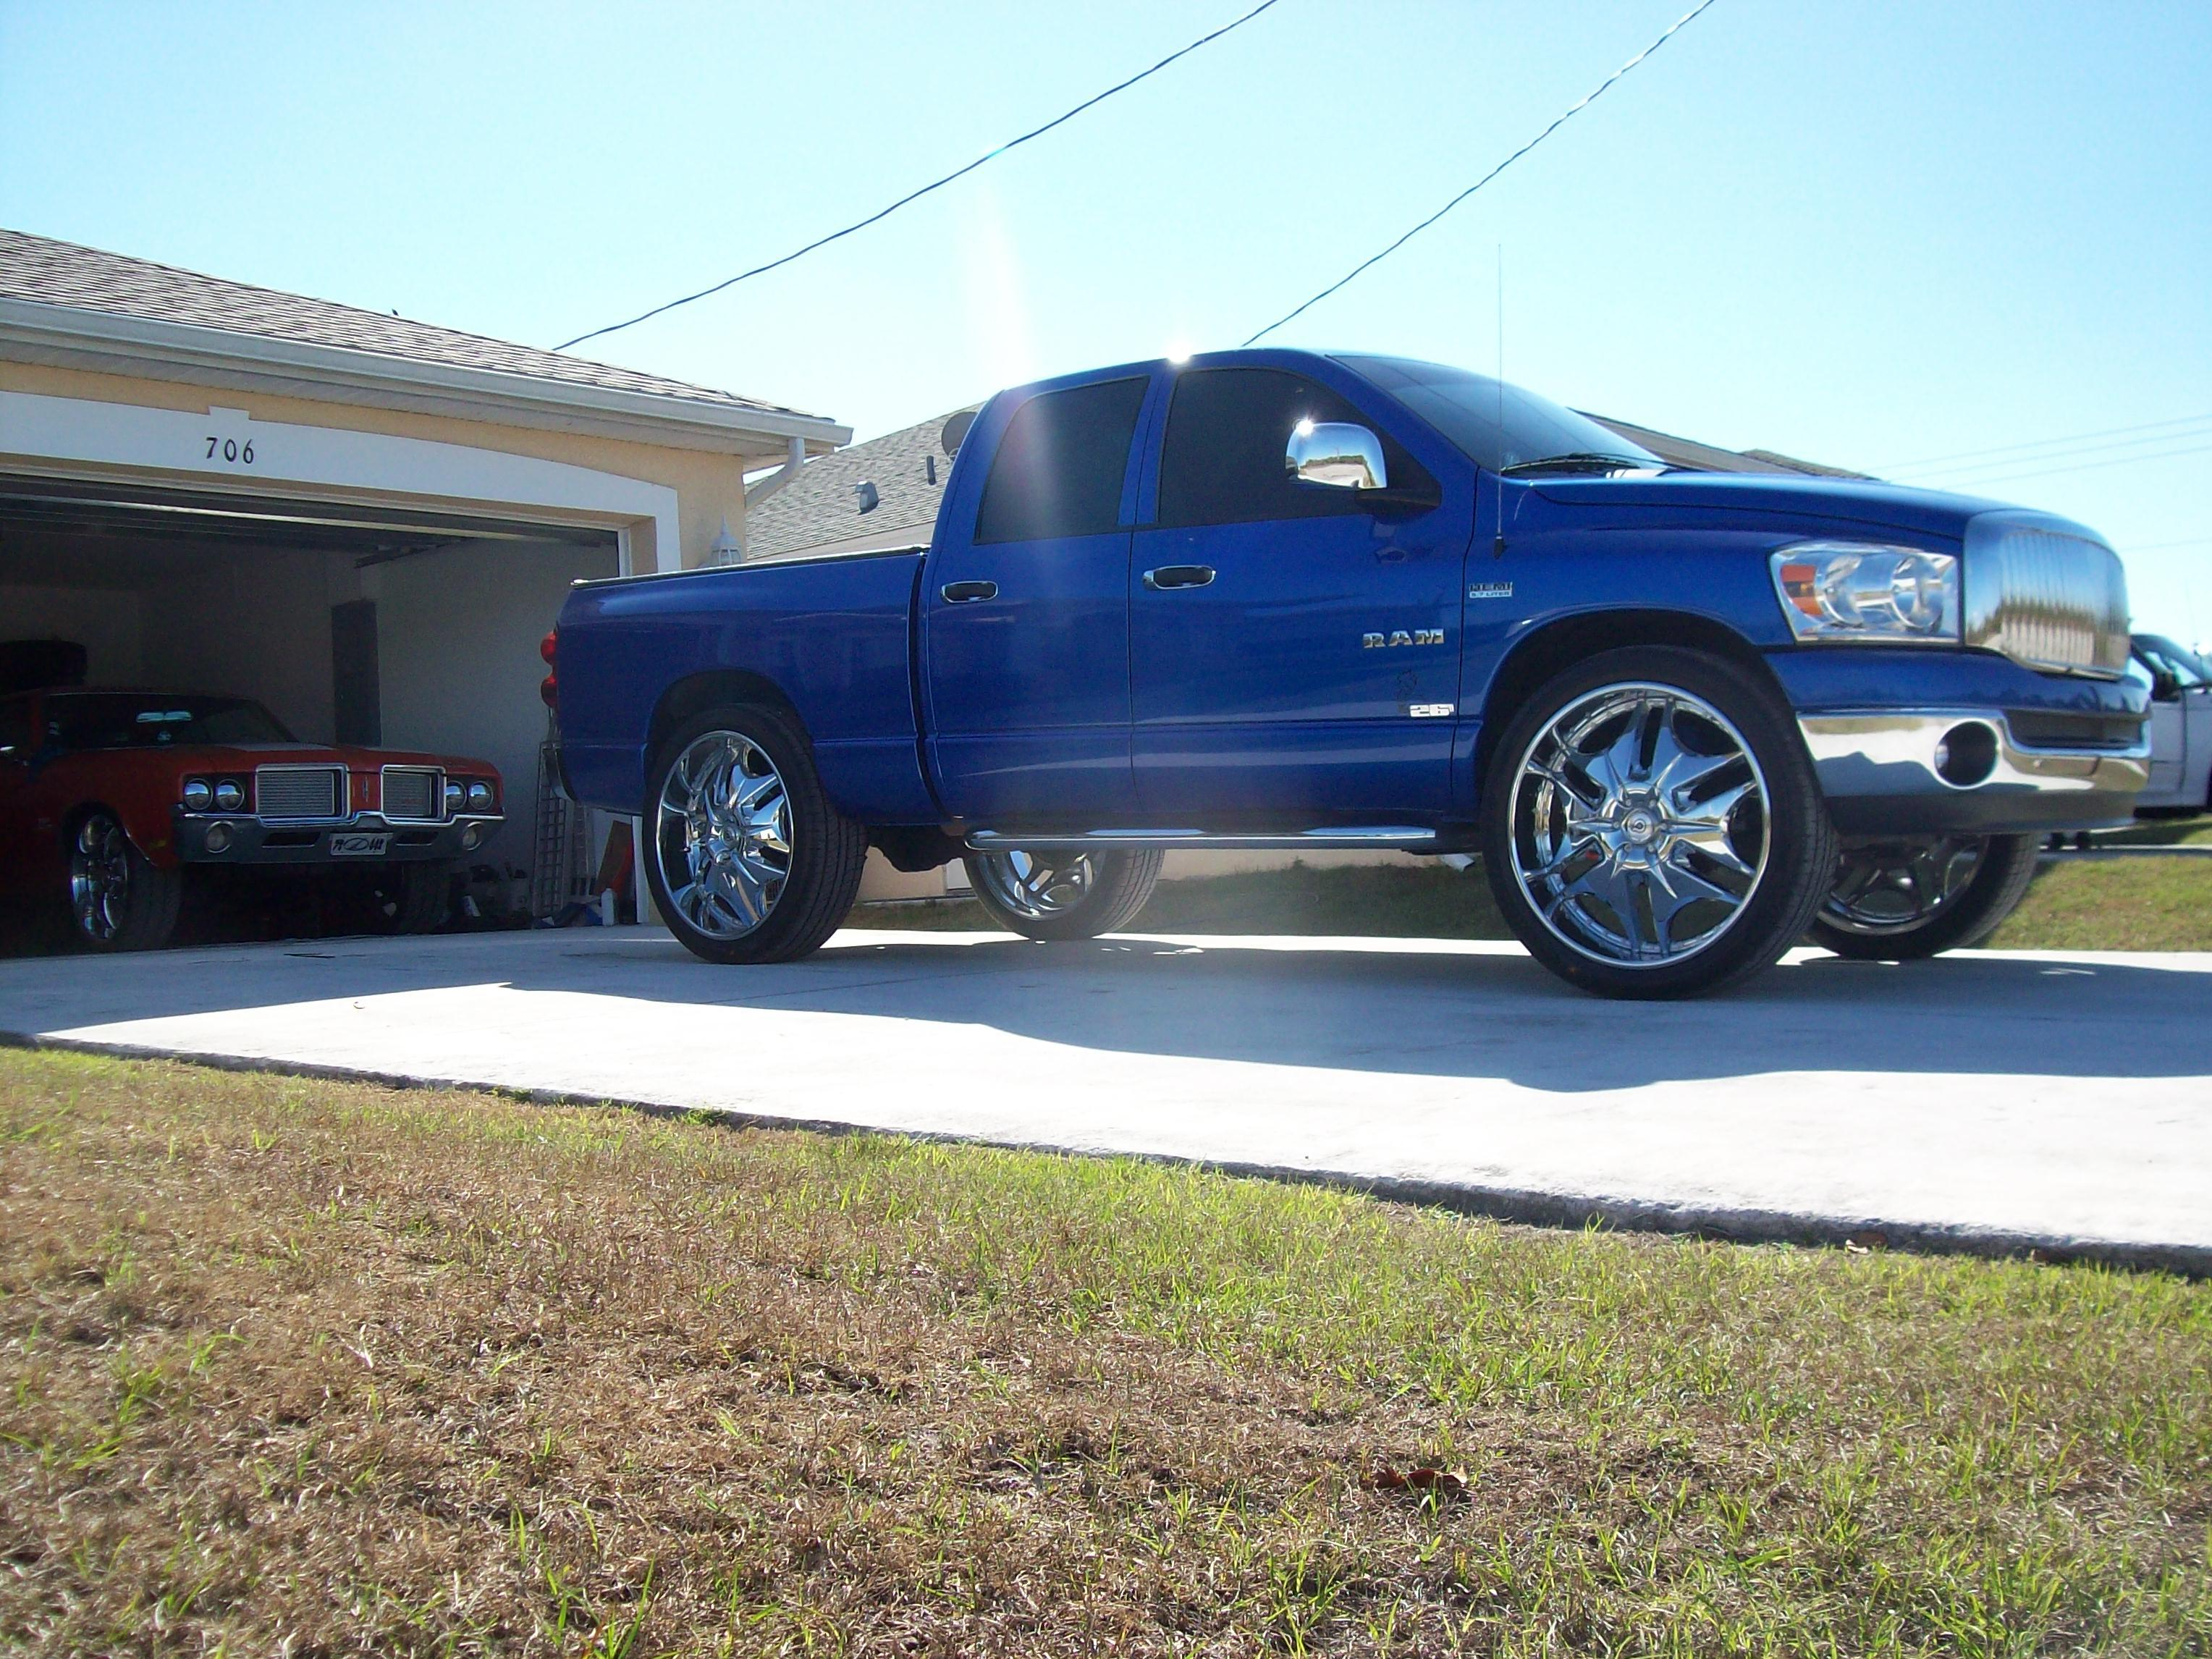 yogistylez1000 2008 Dodge Ram 1500 Regular Cab Specs, Photos ...